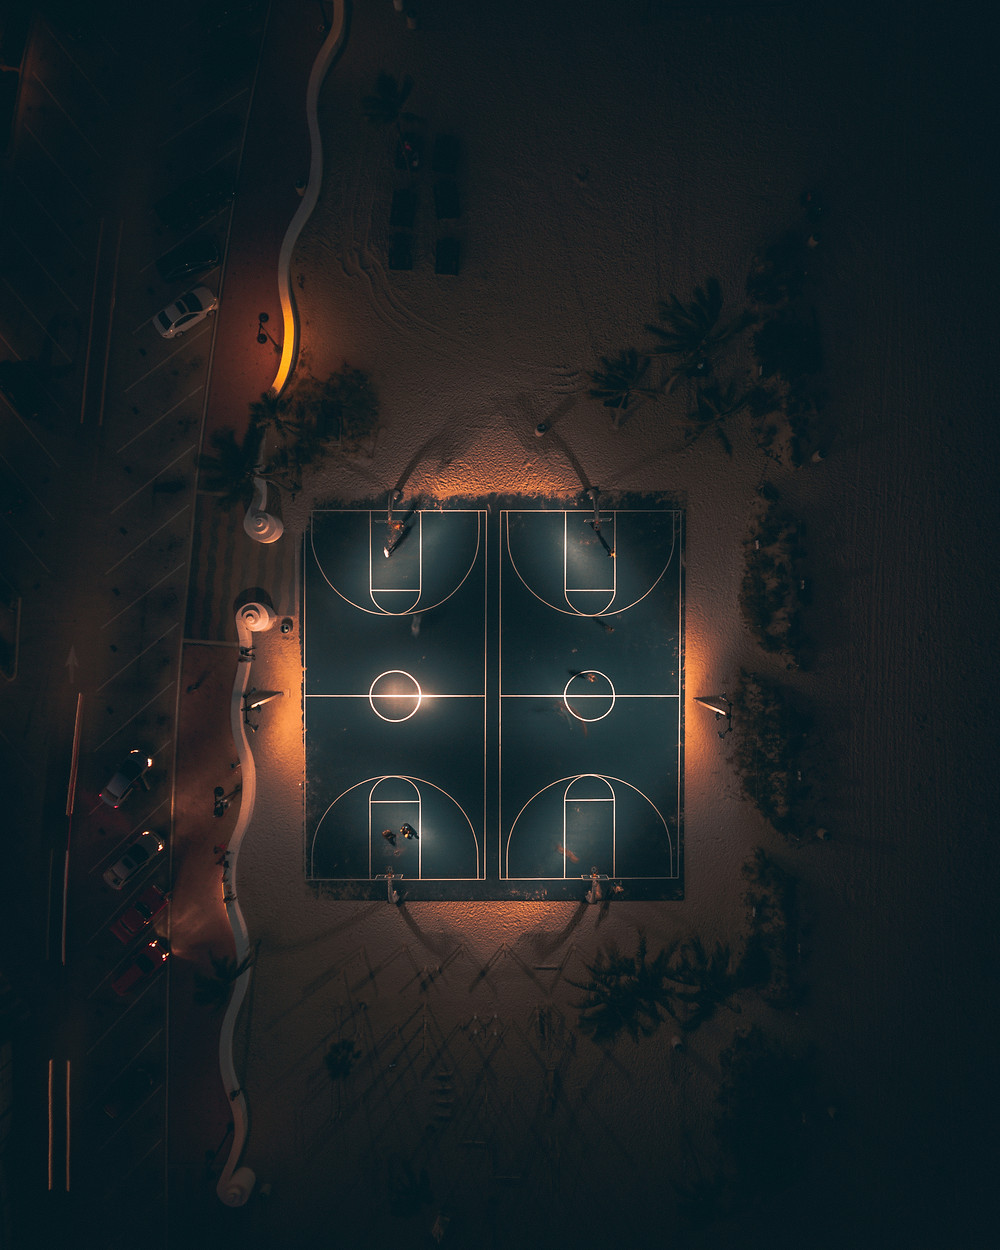 Drone picture of basketball courts in fort lauderdale, FL